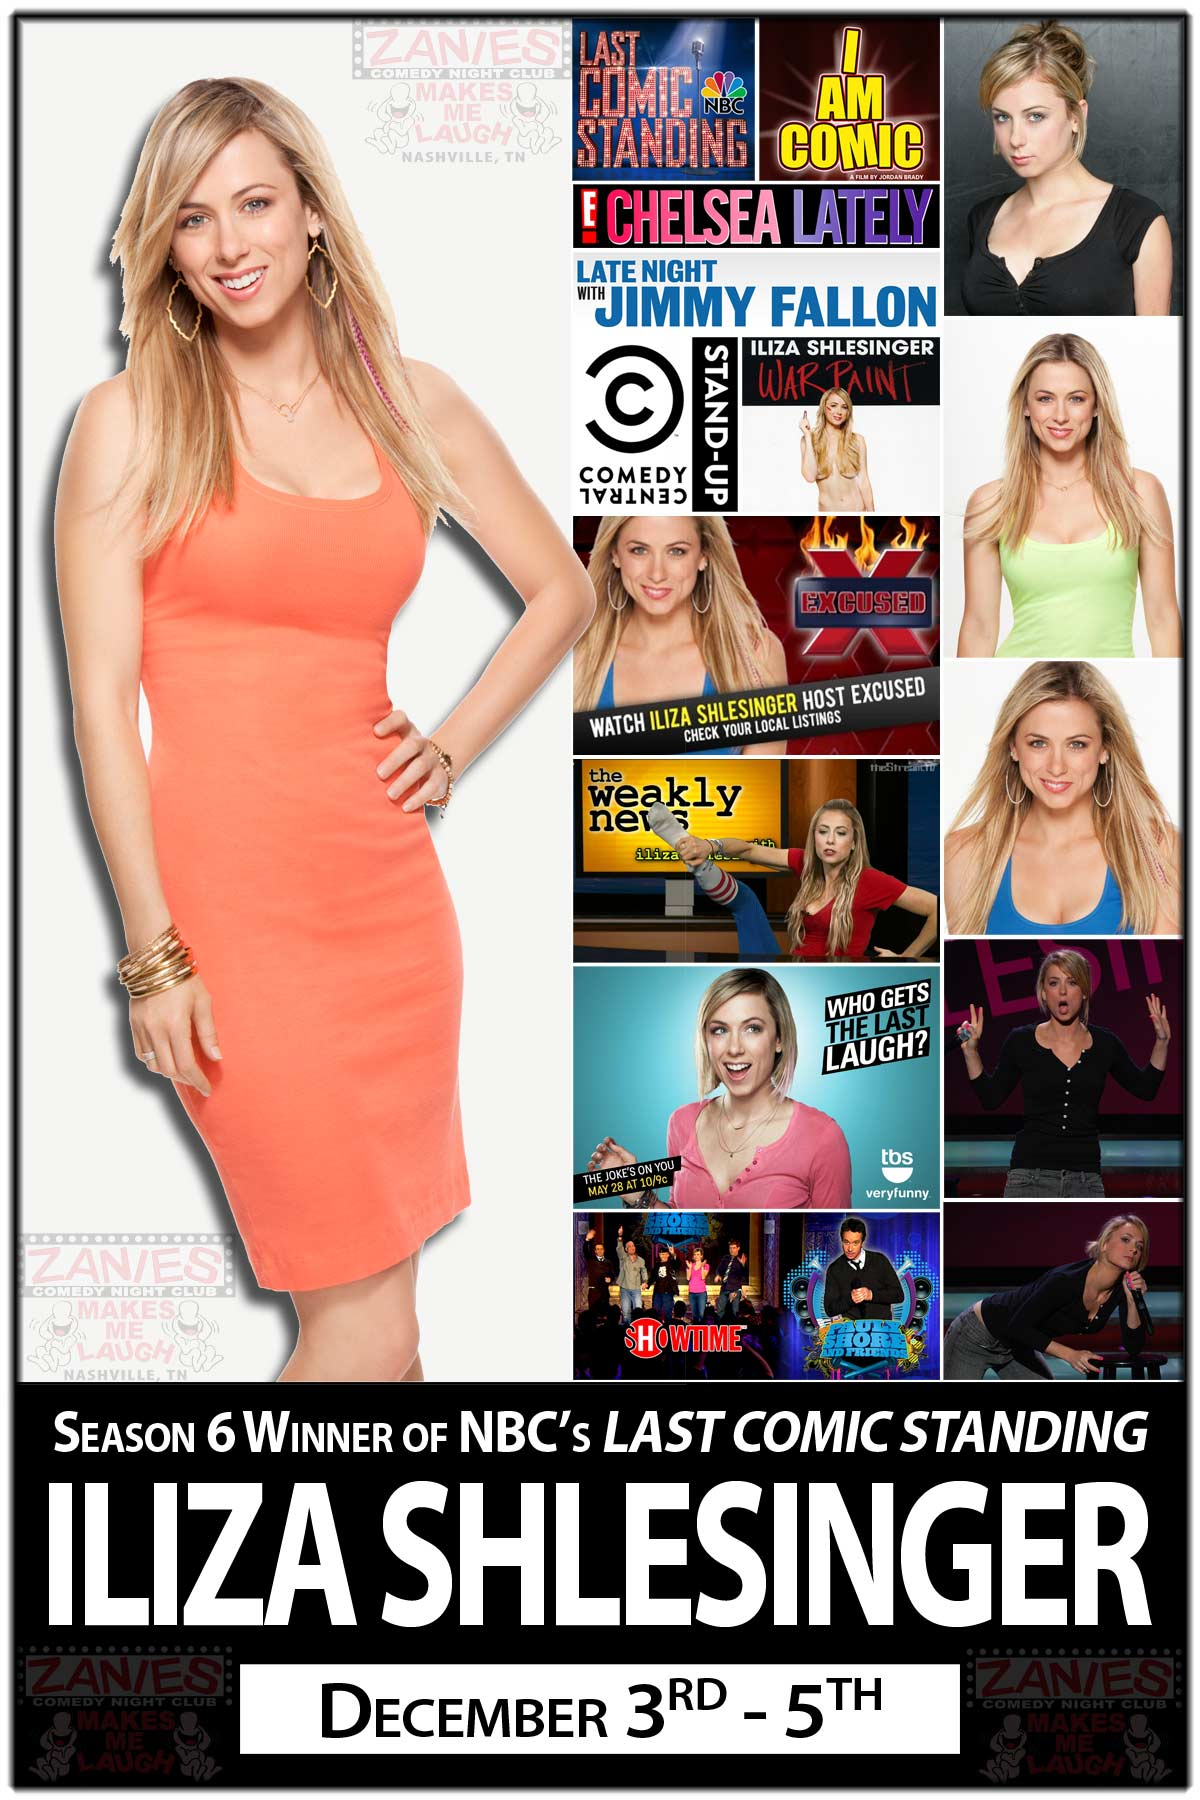 Iliza Shlesinger Season 6 Winner of NBC's LAST COMIC STANDING and much more live at Zomedy Comedy Club Nashville December 3-5, 2015